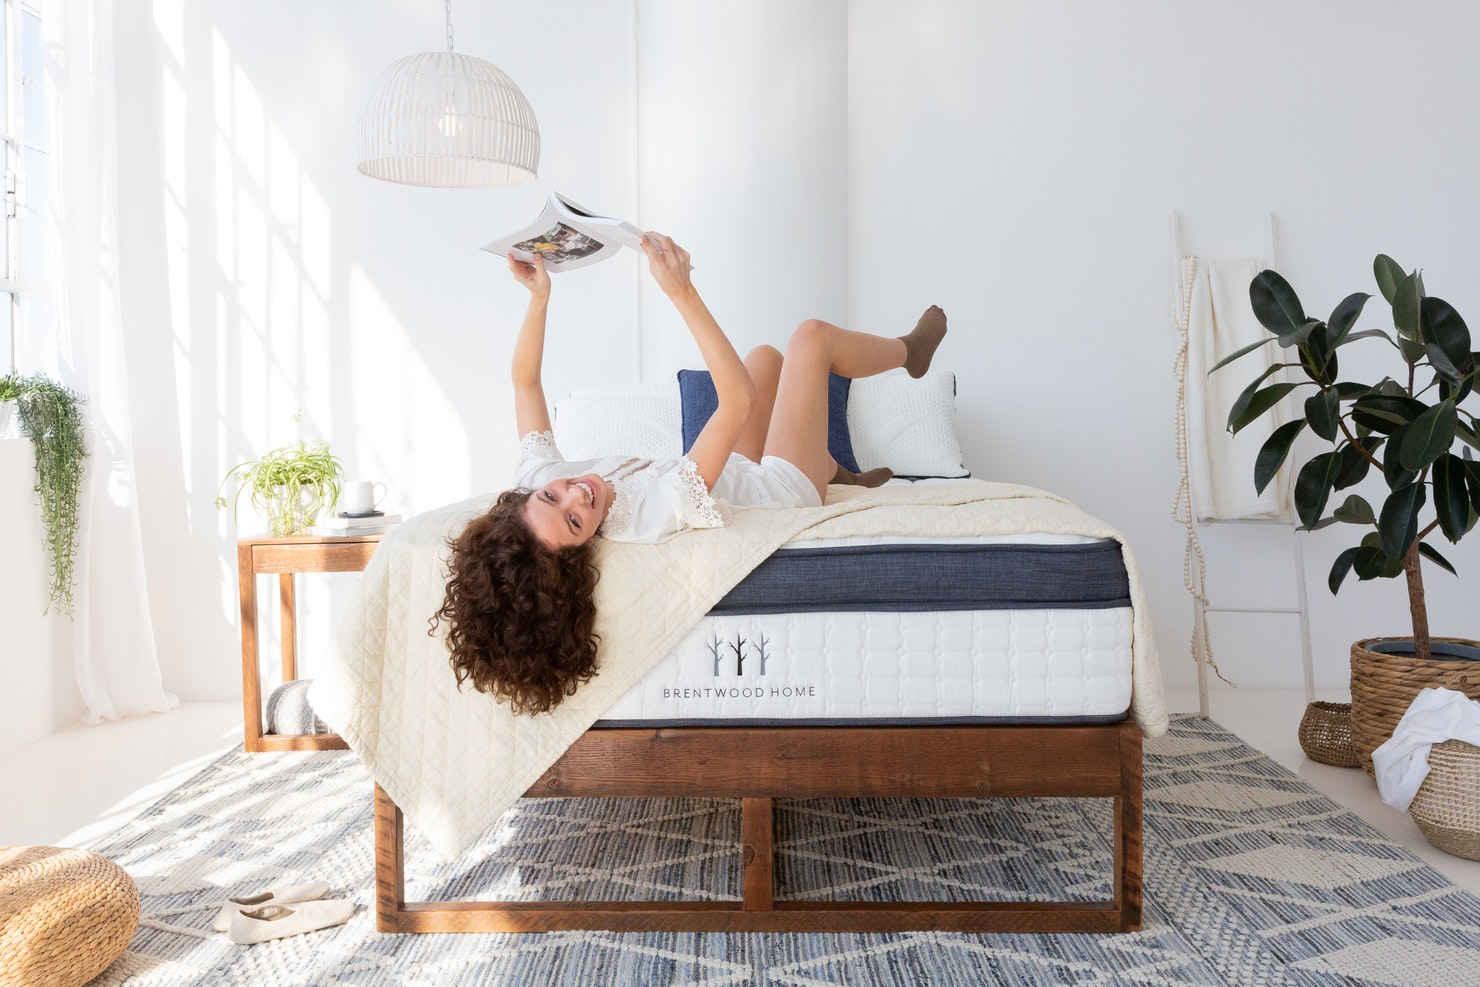 which mattress is better? comparison review